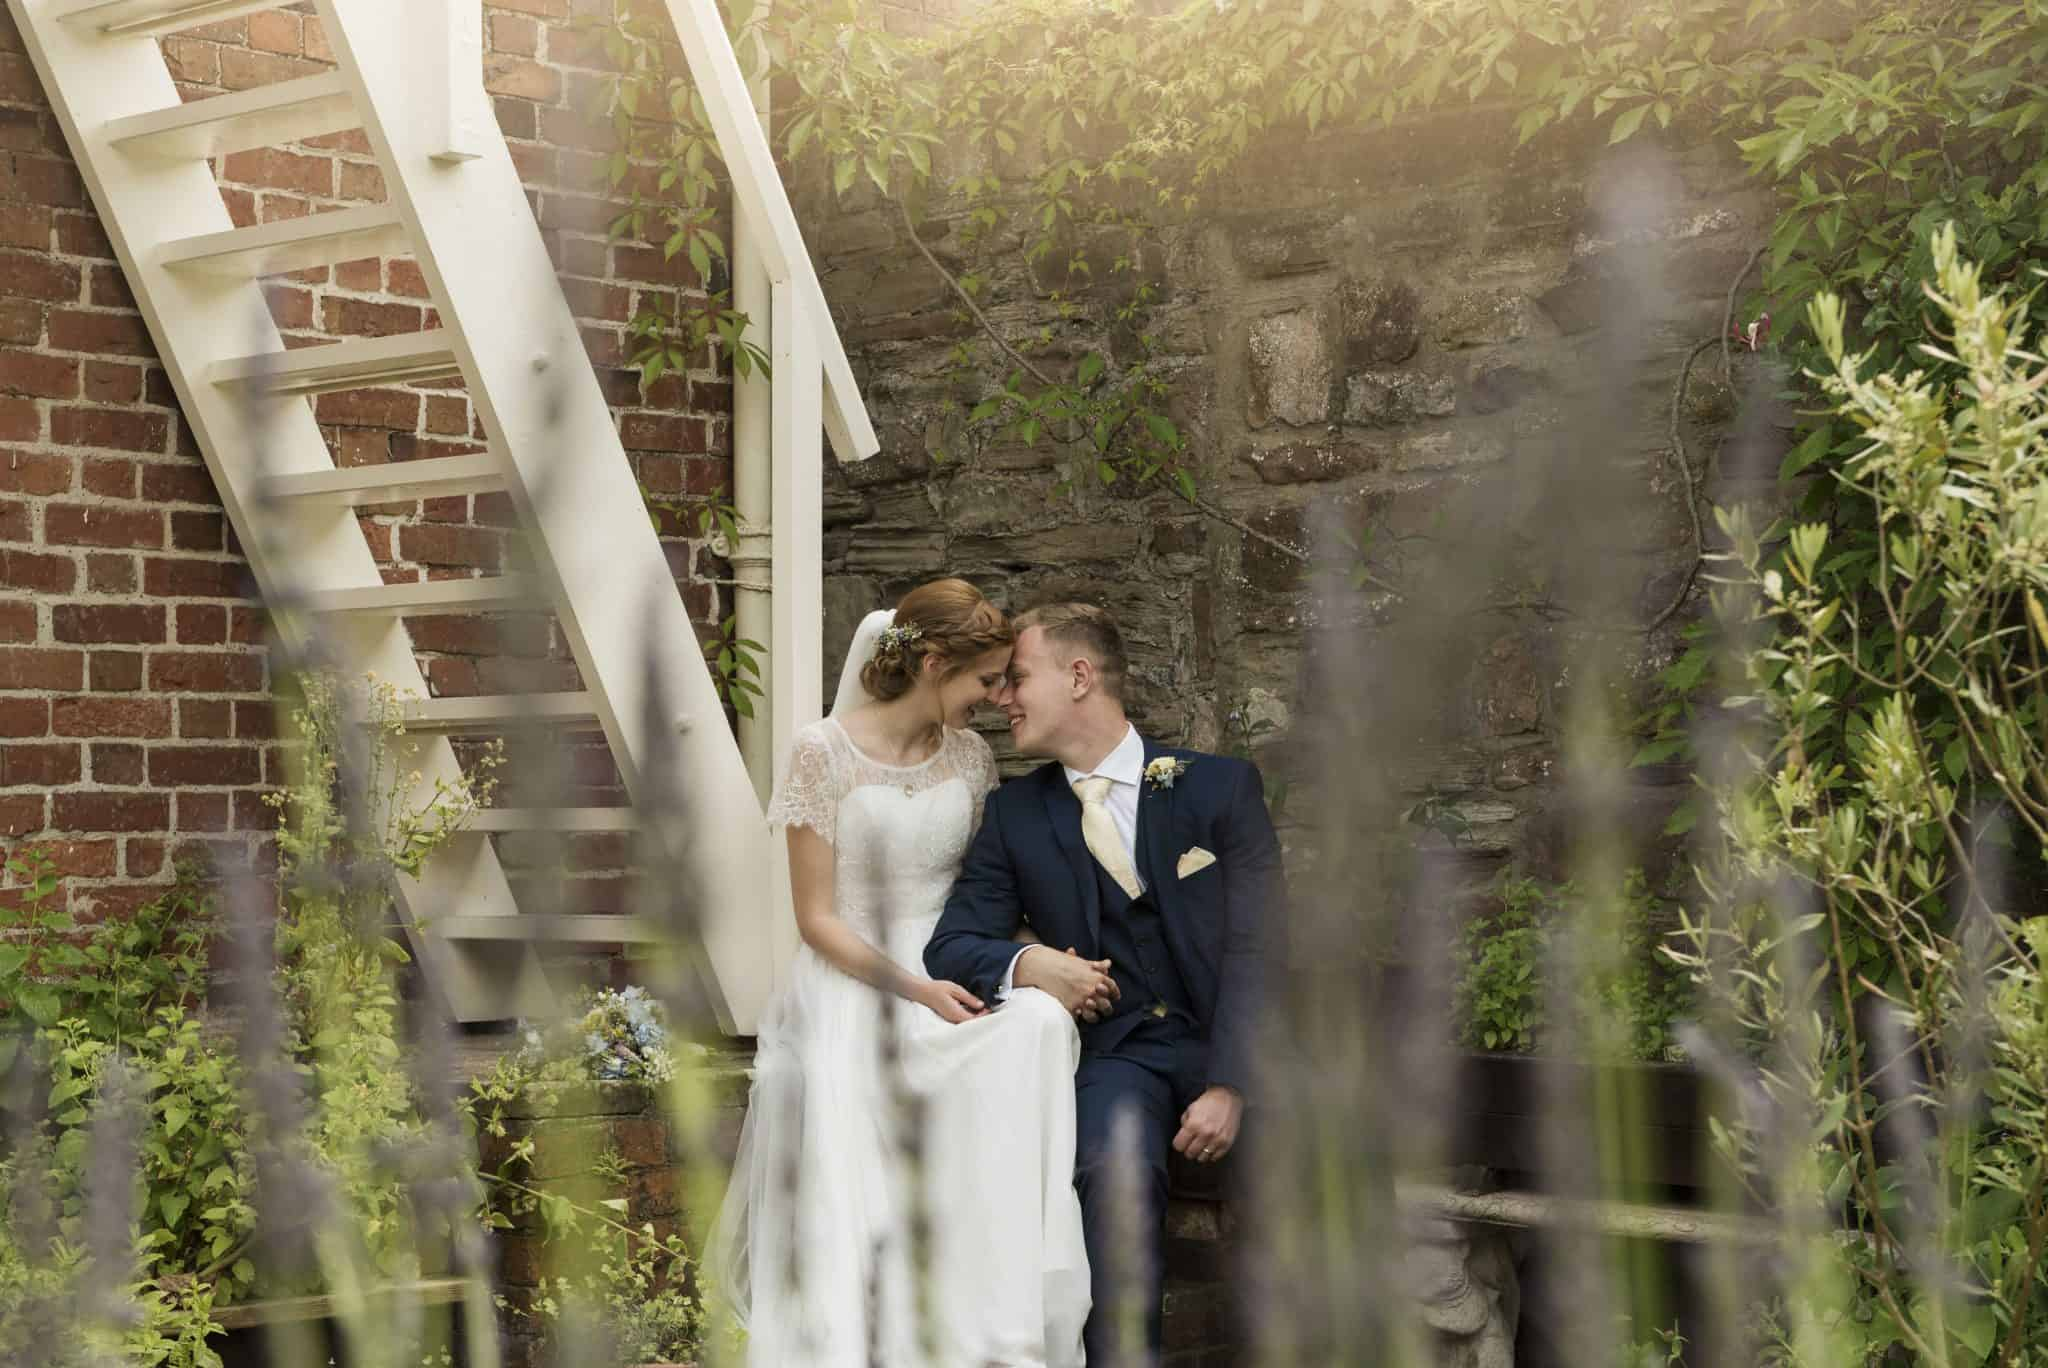 Bride and groom kiss on stairwell wedding photographers cardiff